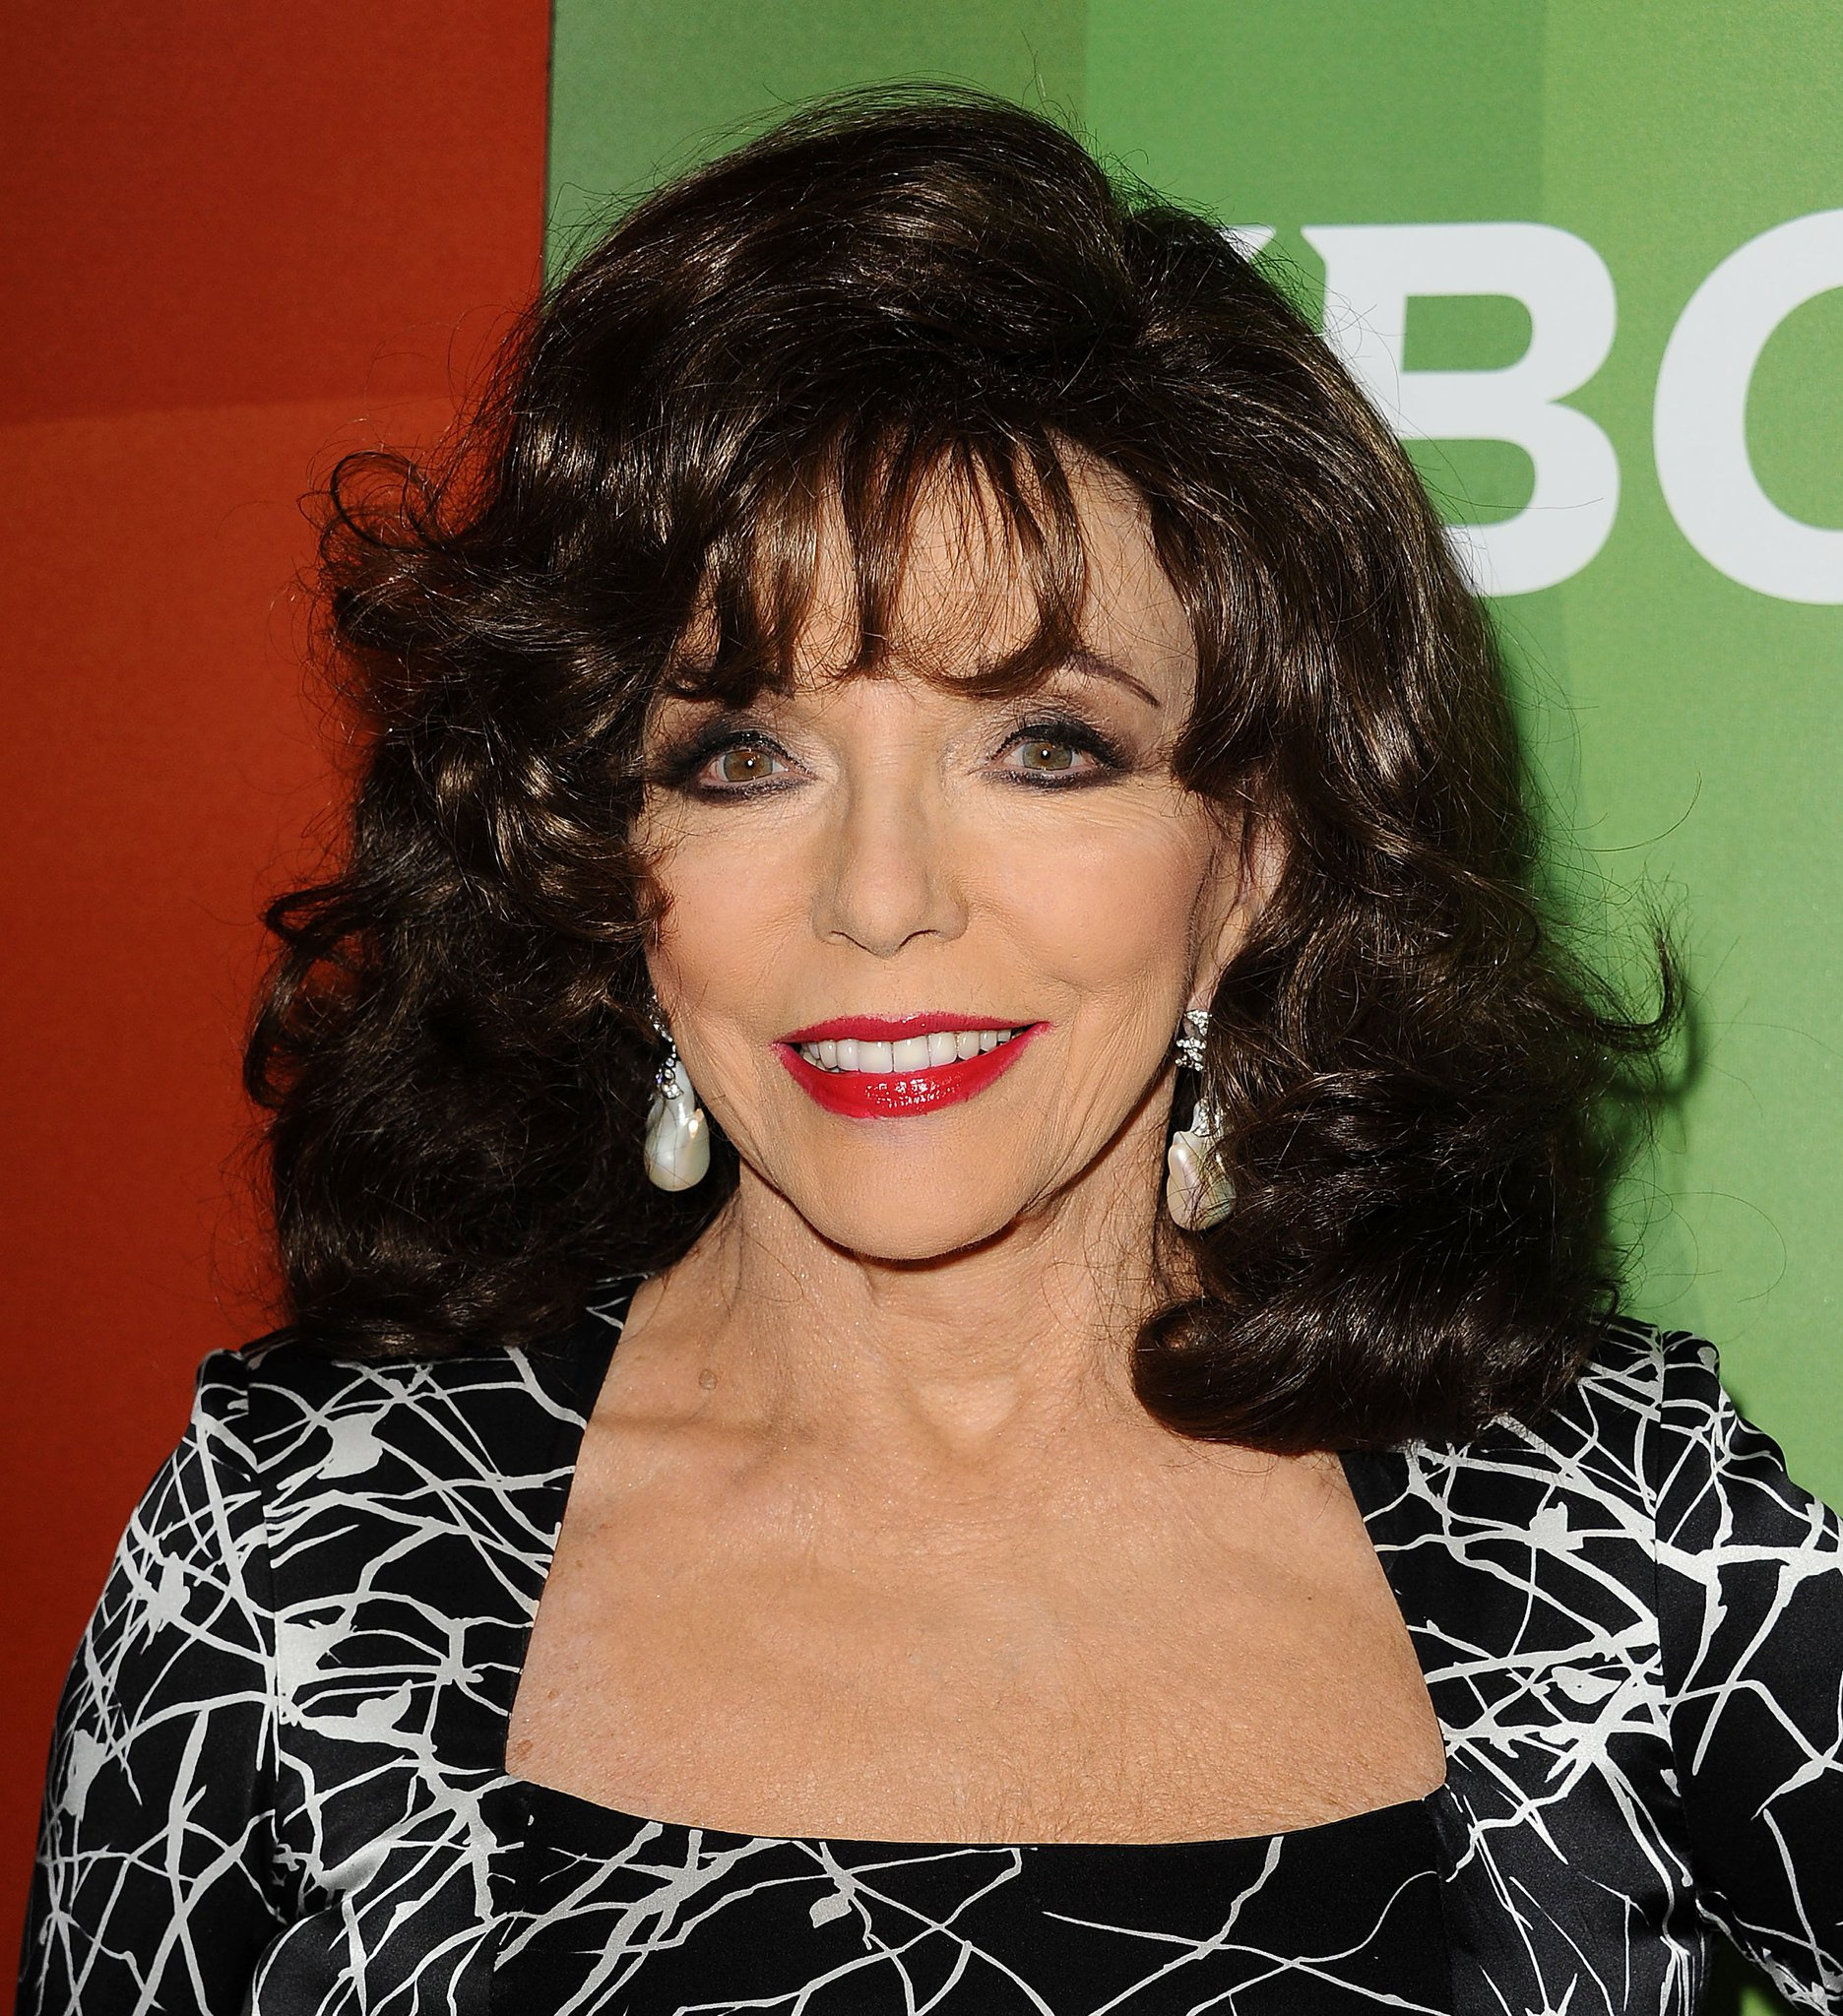 Happy Birthday Joan Collins! She\s 84 today! Three images courtesy of Doctor Macro.